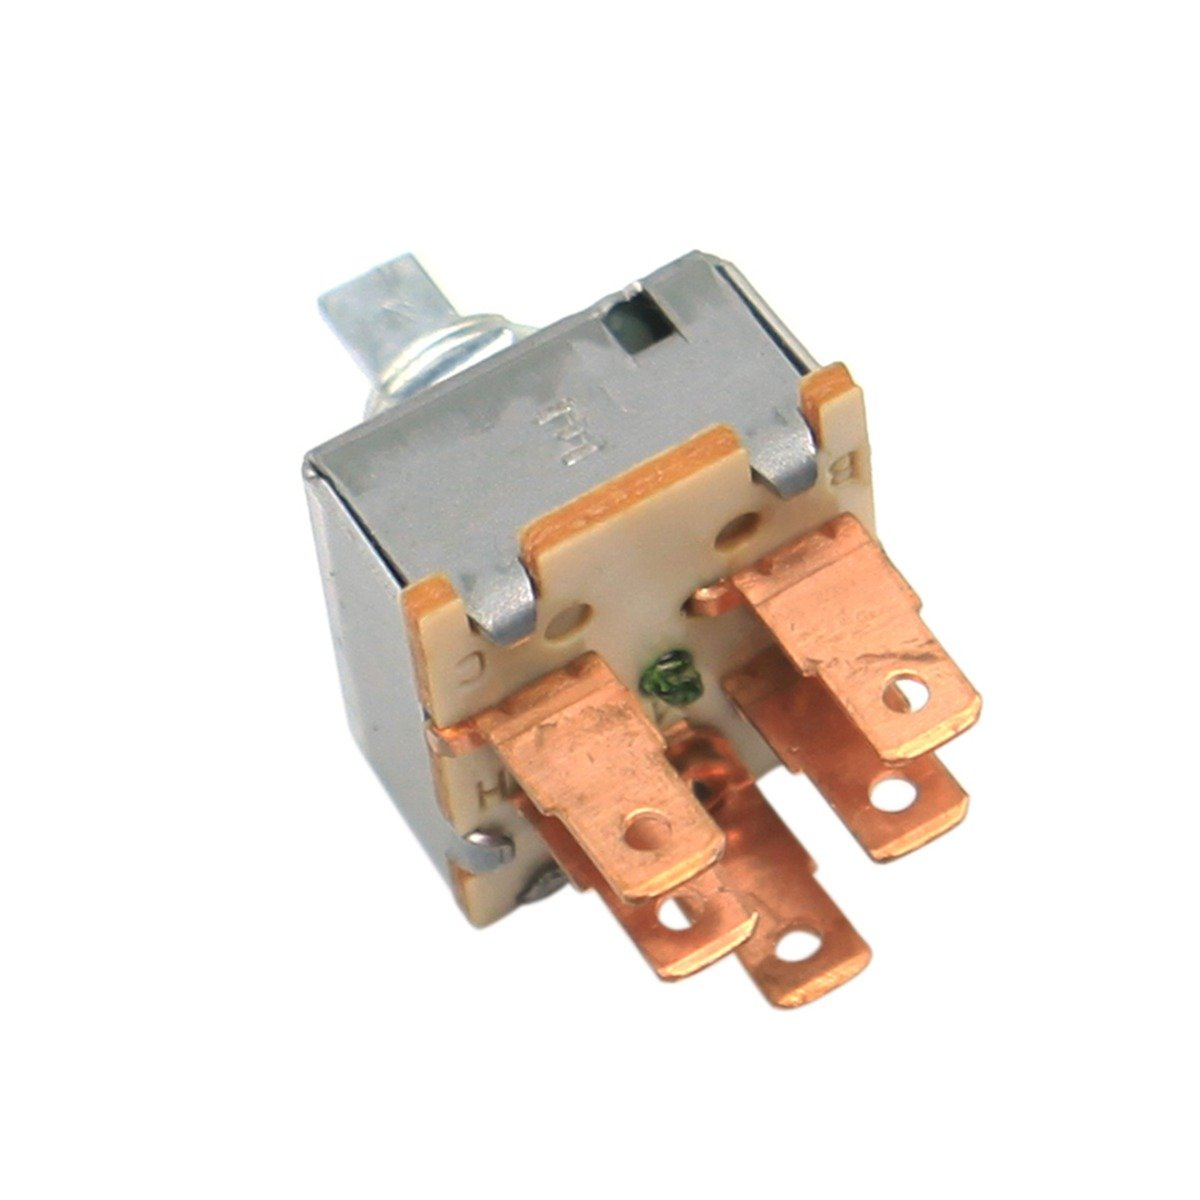 Blower Motor Switch 6675176 Compatible with Bobcat Skid steer Loader 319 320 321 322 323 324 325 328 329 331 334 335 337 341 425